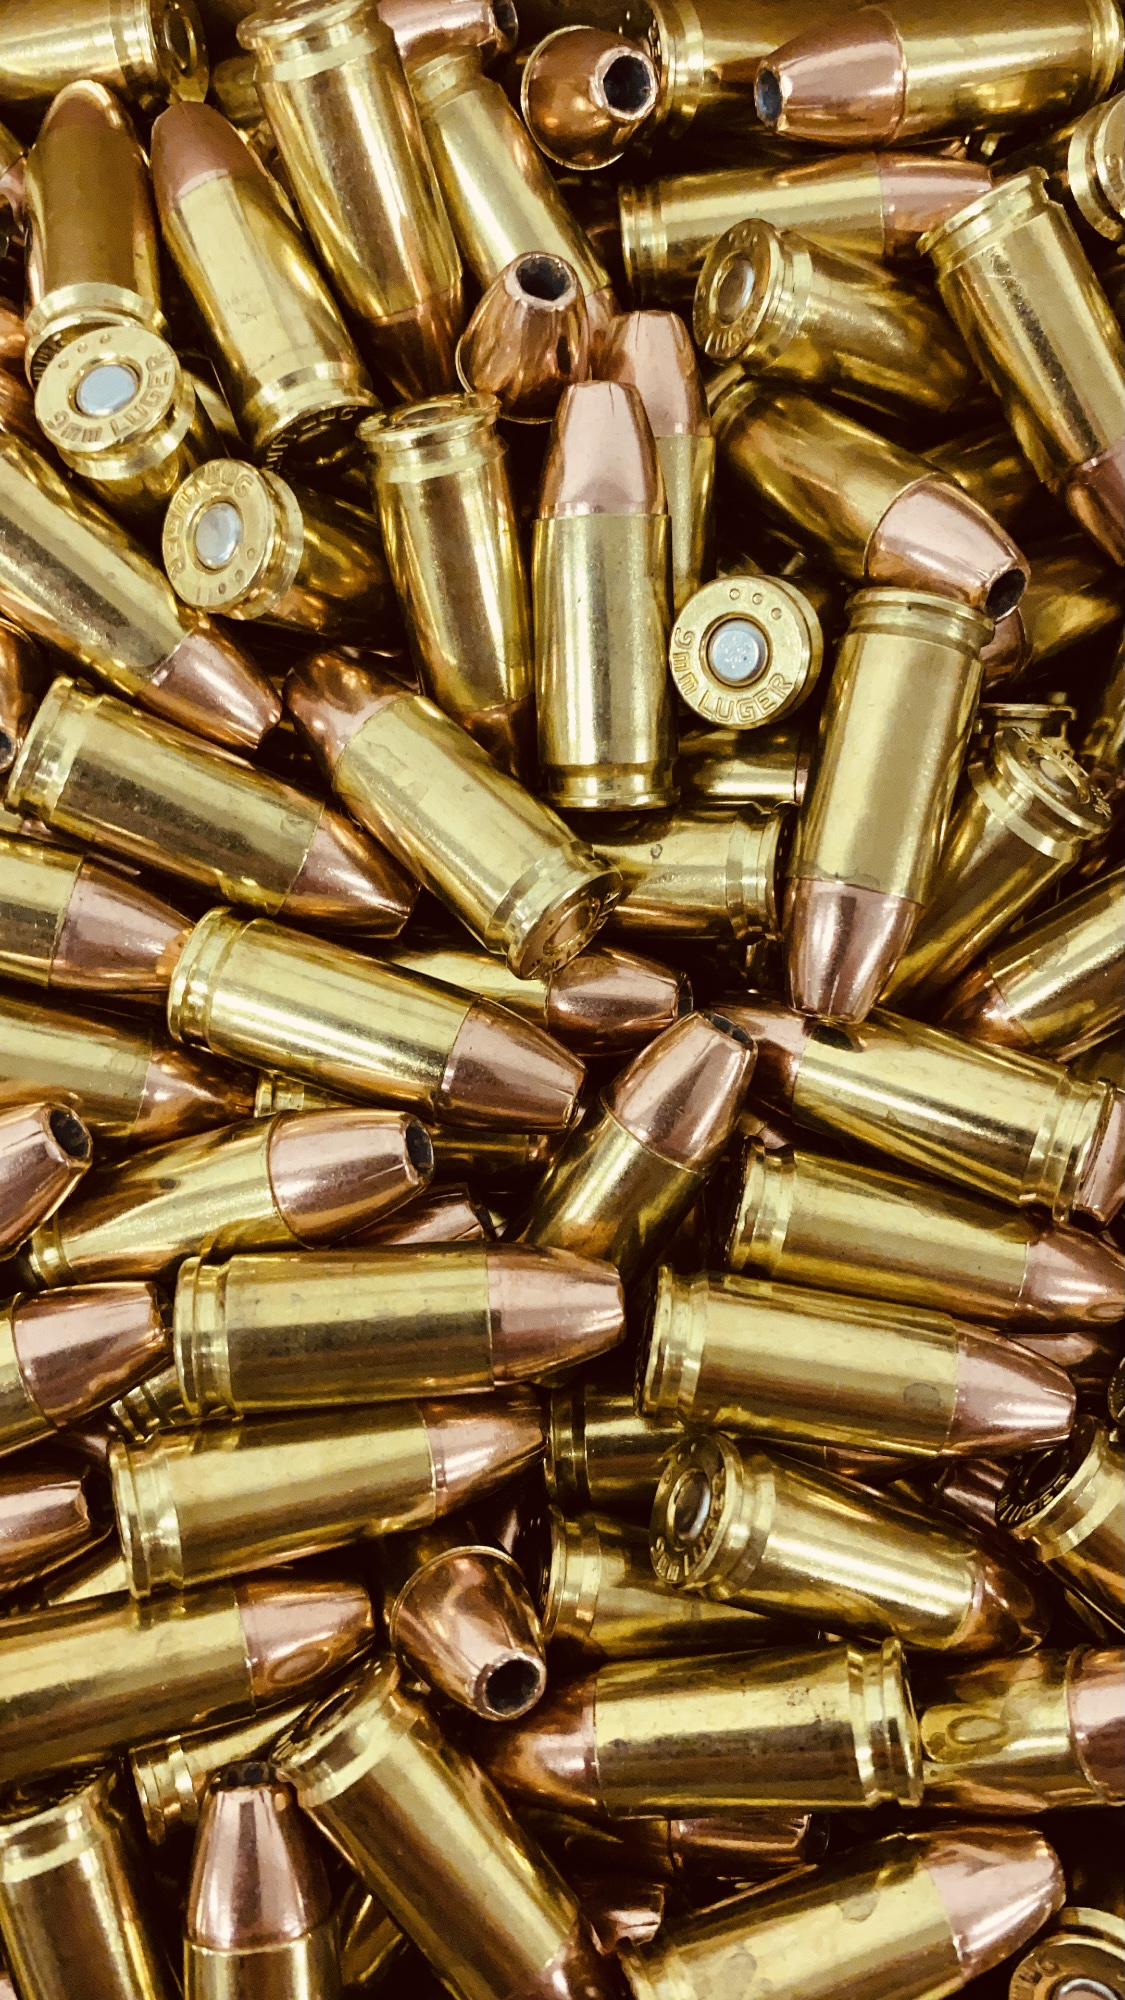 9mm Luger Ammo available at Rhuged